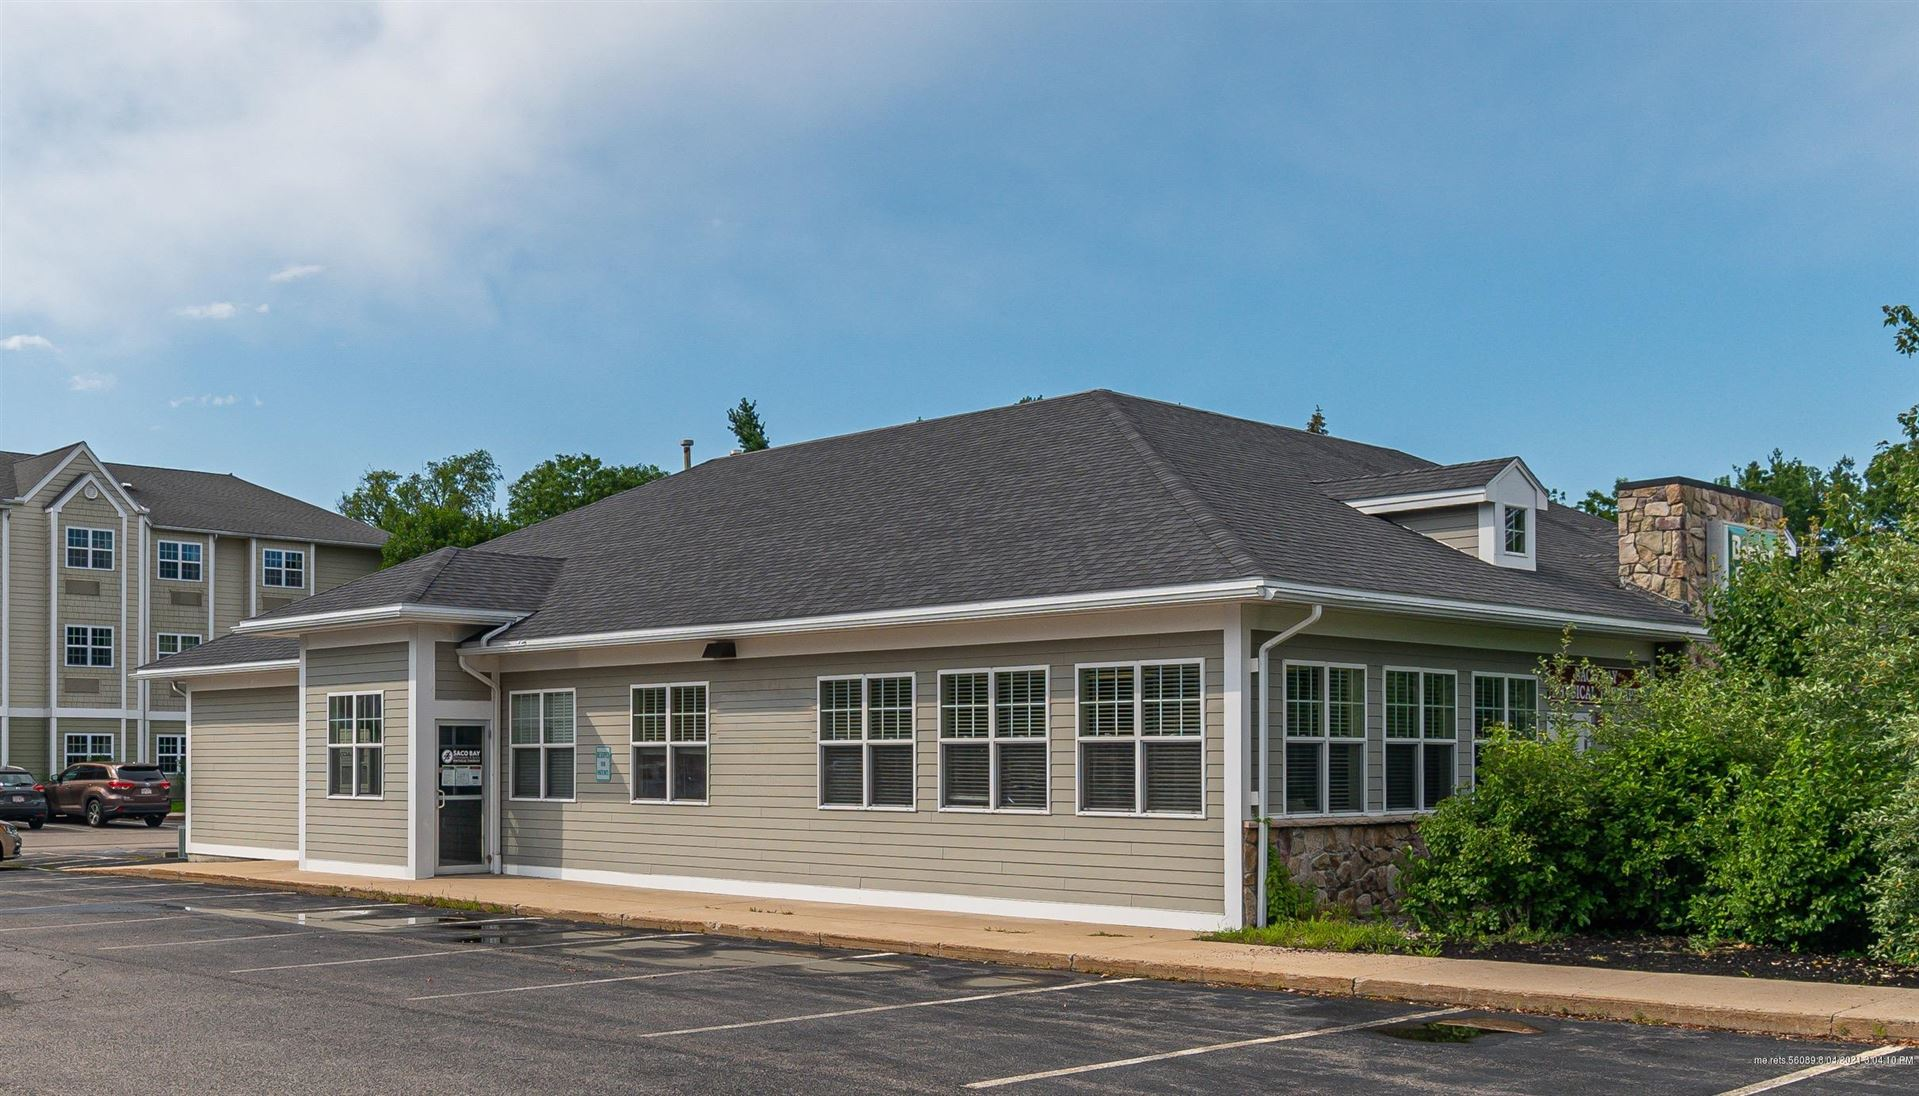 Photo of 8 Market Place Drive #2A, York, ME 03909 (MLS # 1503640)